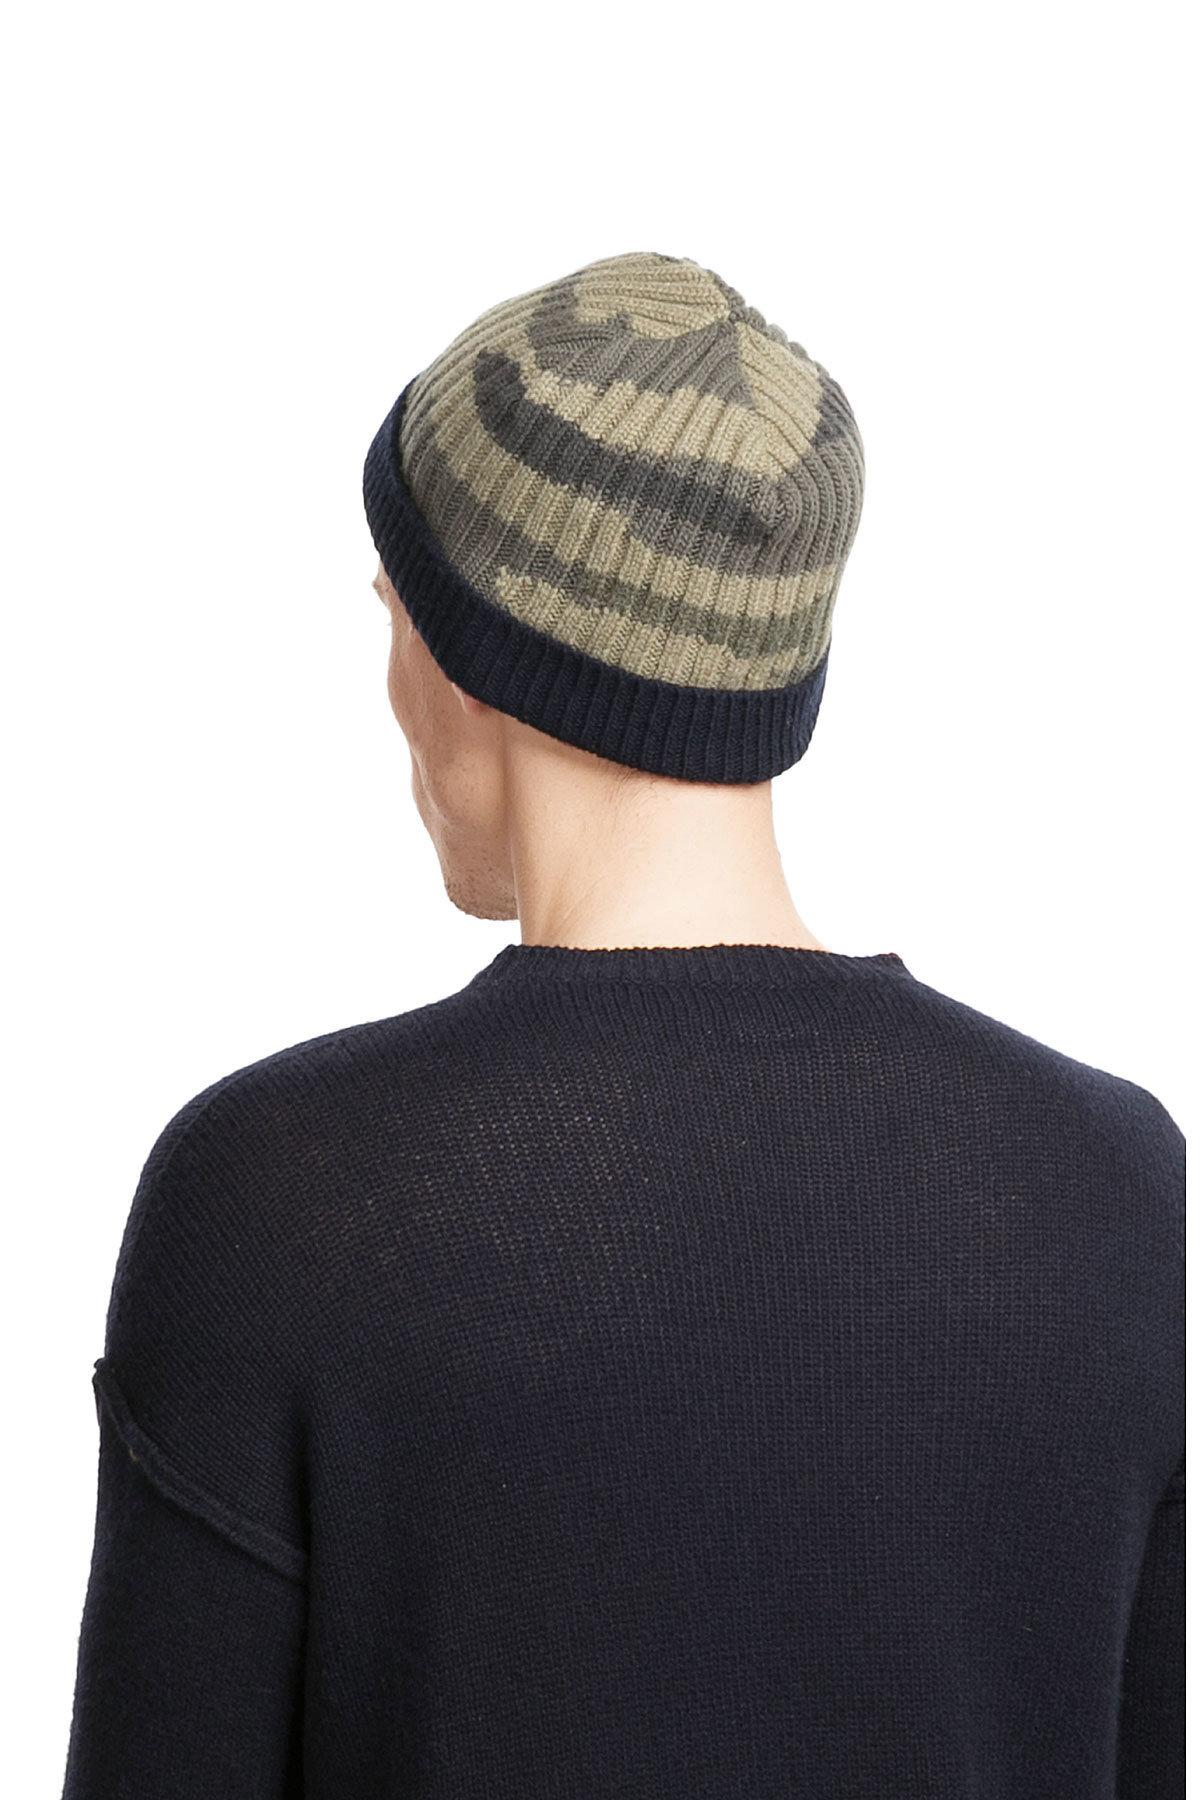 Lyst - Valentino Wool-cashmere Camouflage Hat in Green for Men 4da6ad51c71a